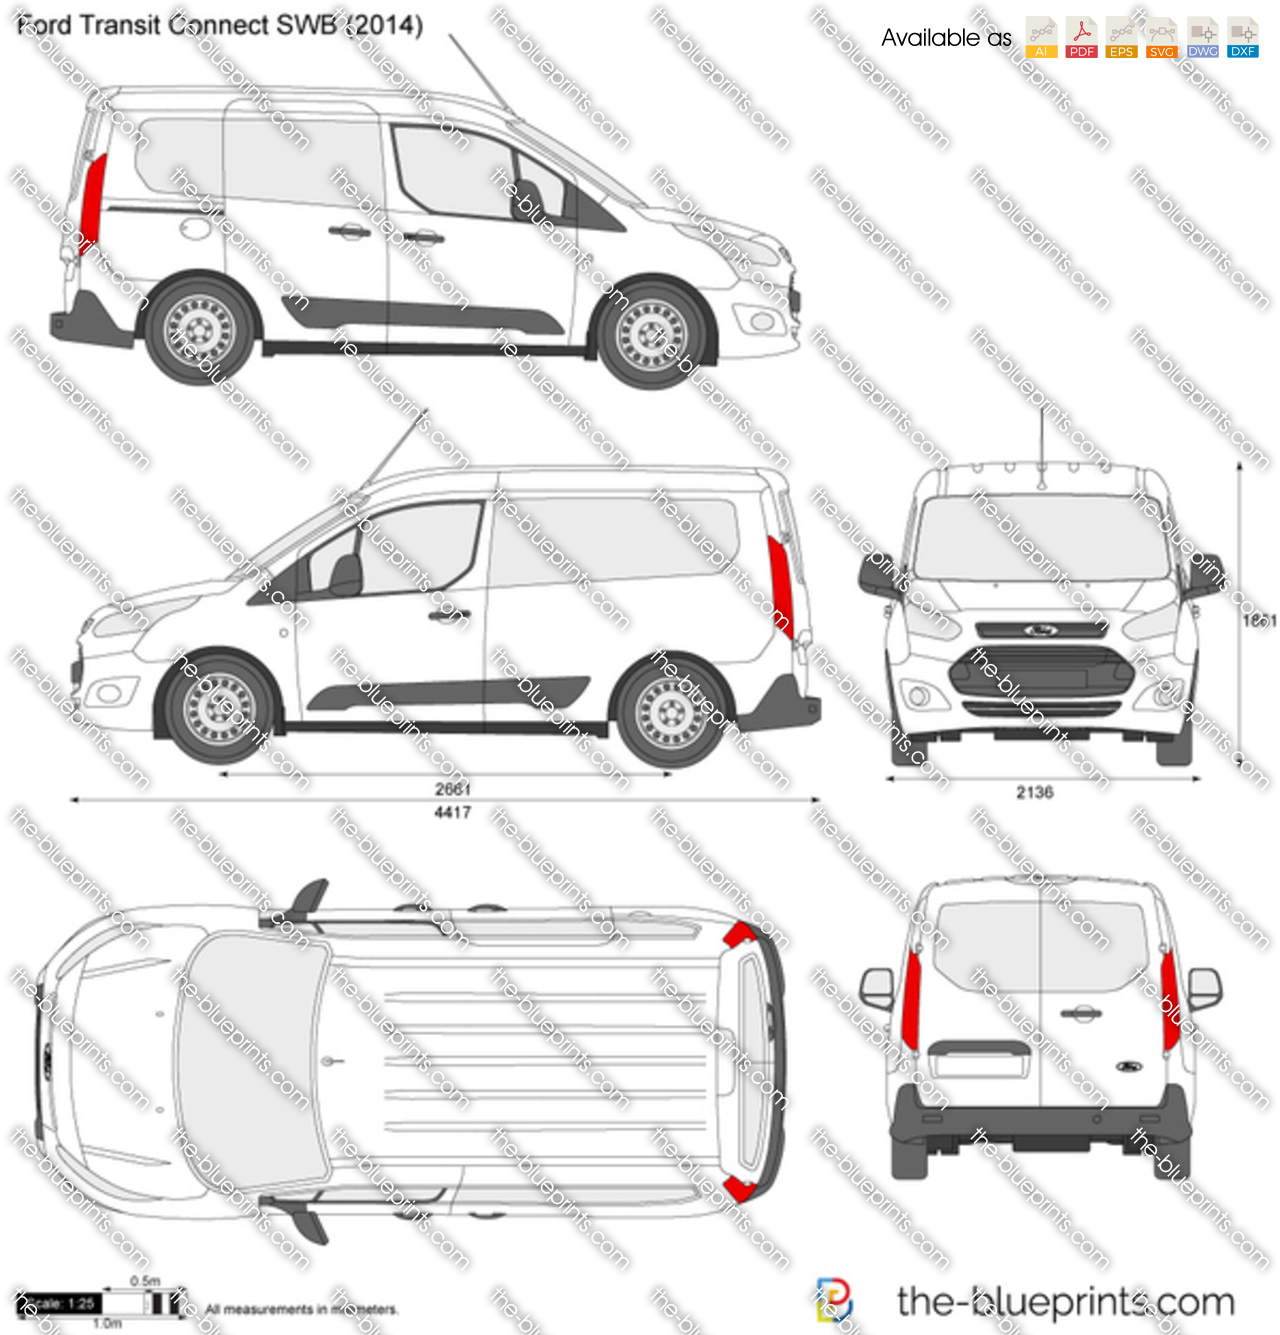 ford transit connect swb vector drawing. Black Bedroom Furniture Sets. Home Design Ideas